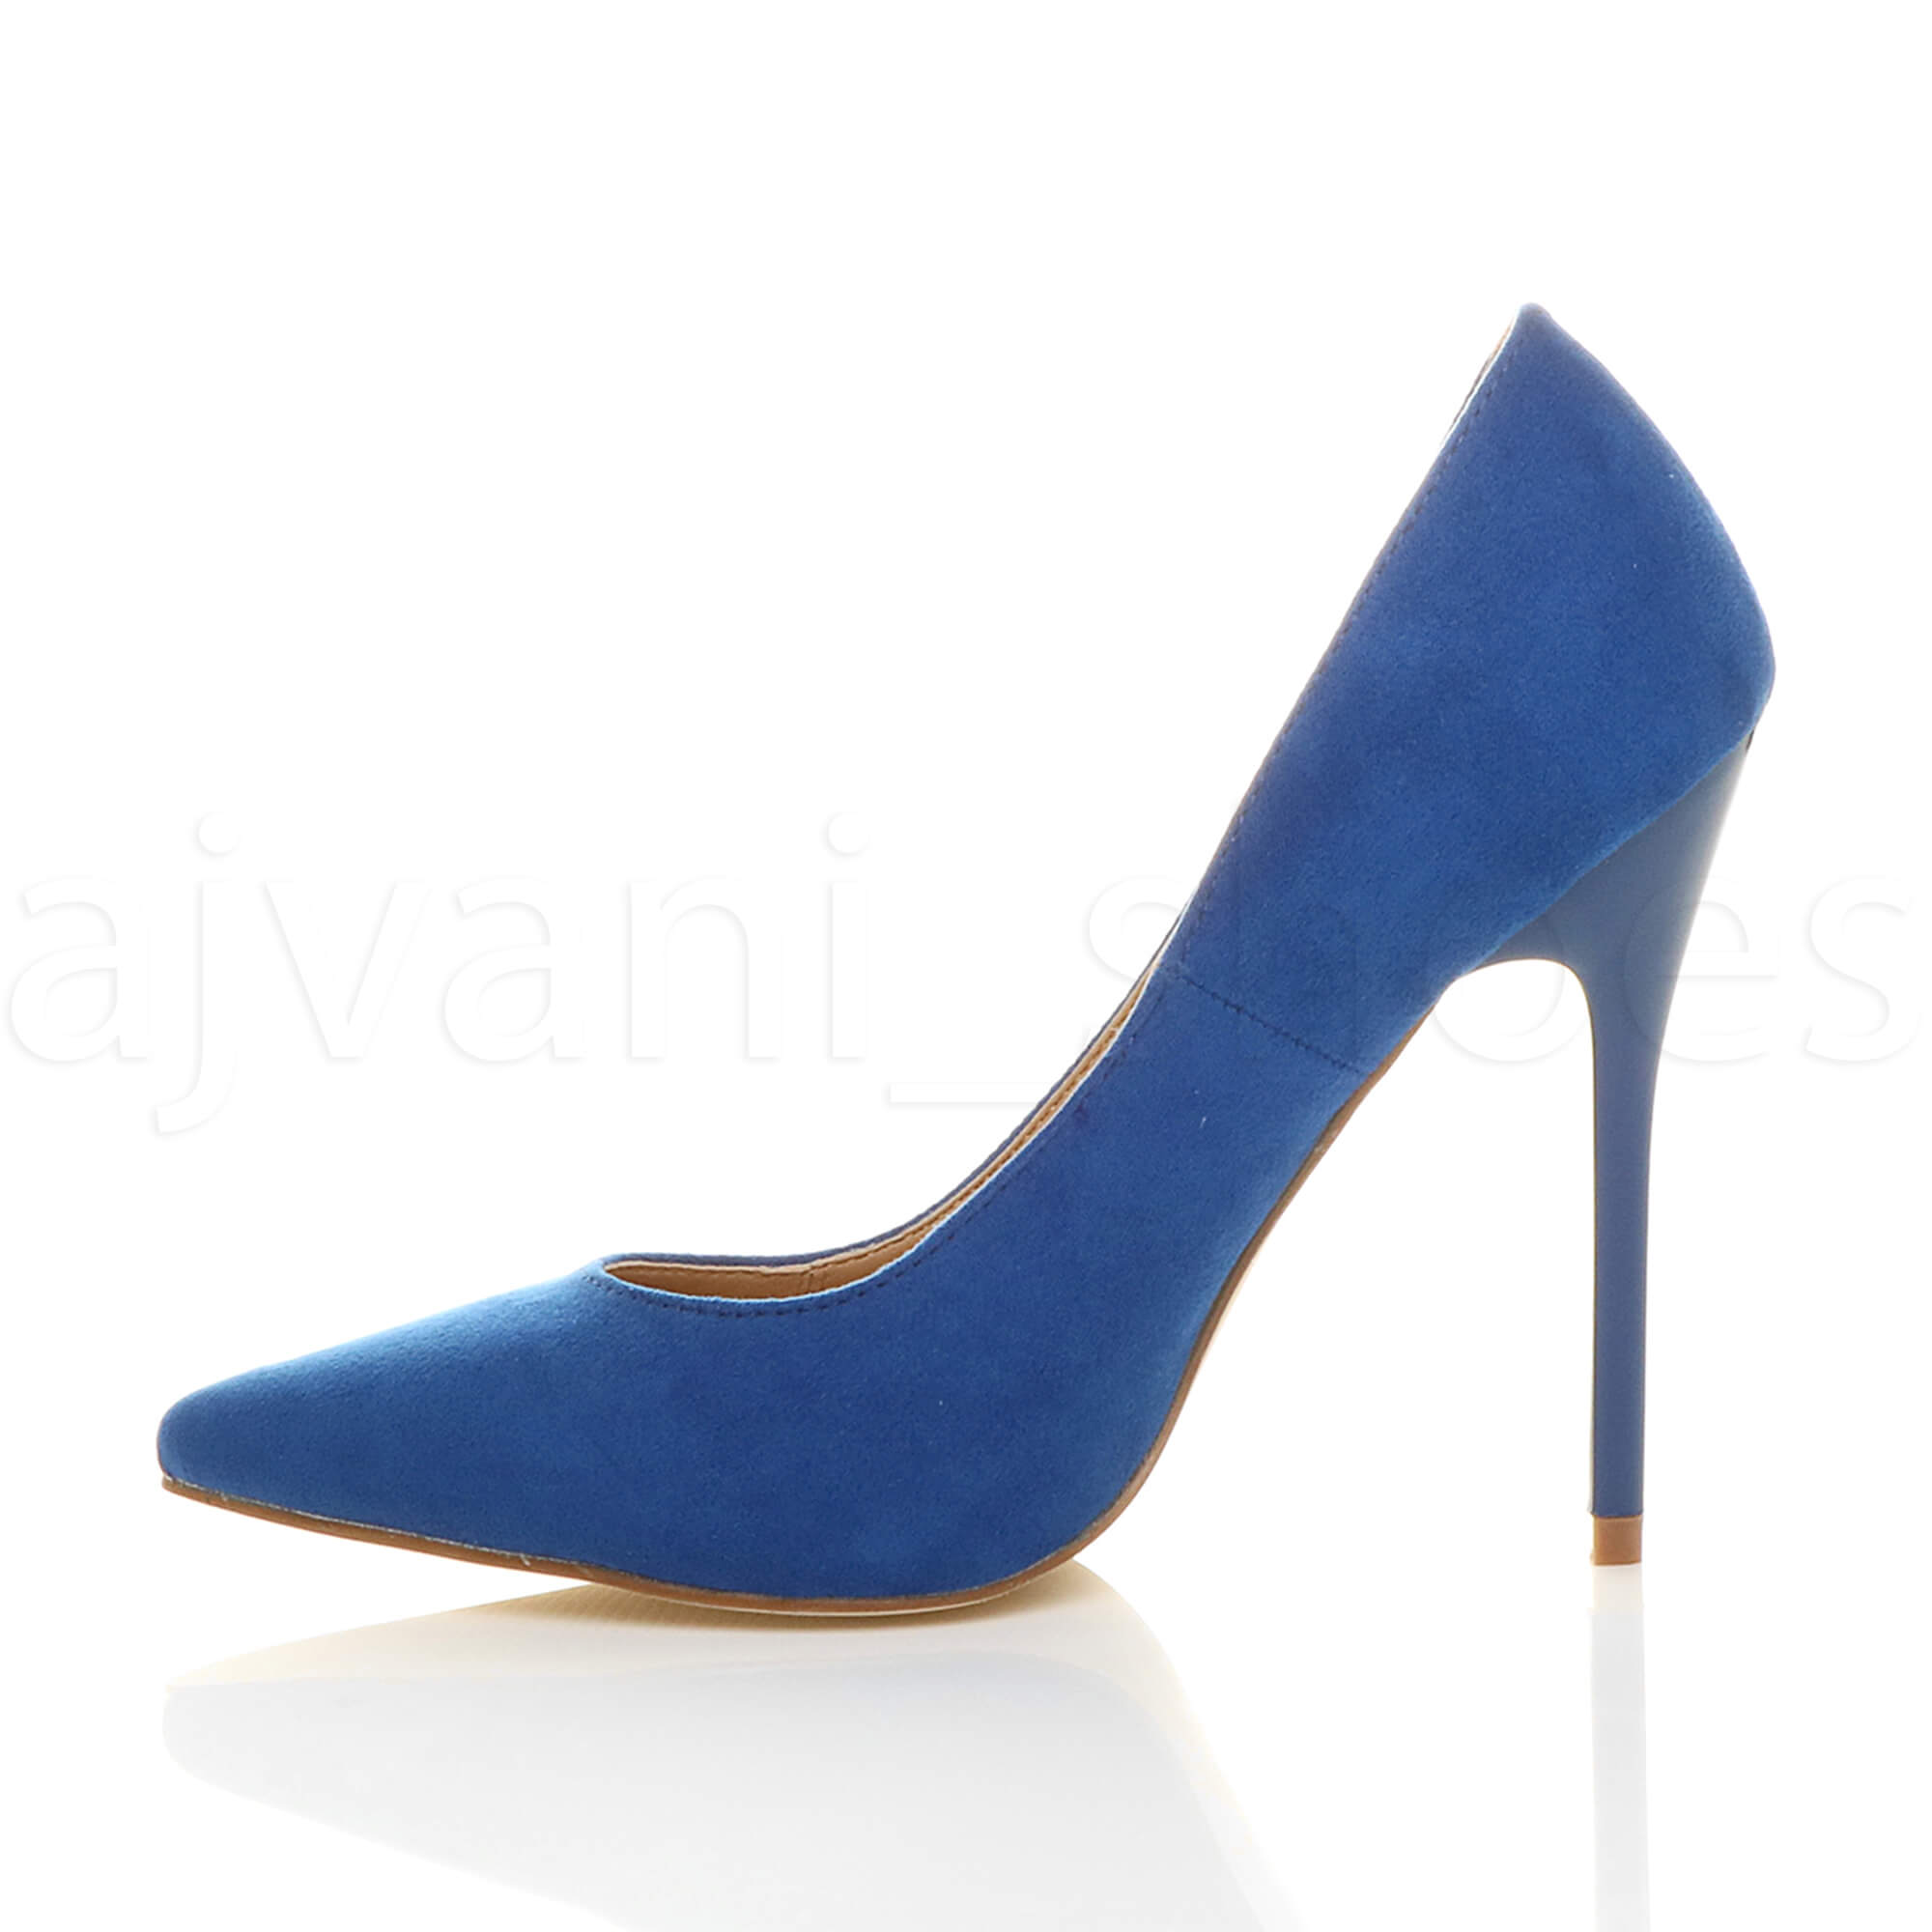 WOMENS-LADIES-HIGH-HEEL-POINTED-CONTRAST-COURT-SMART-PARTY-WORK-SHOES-PUMPS-SIZE thumbnail 44